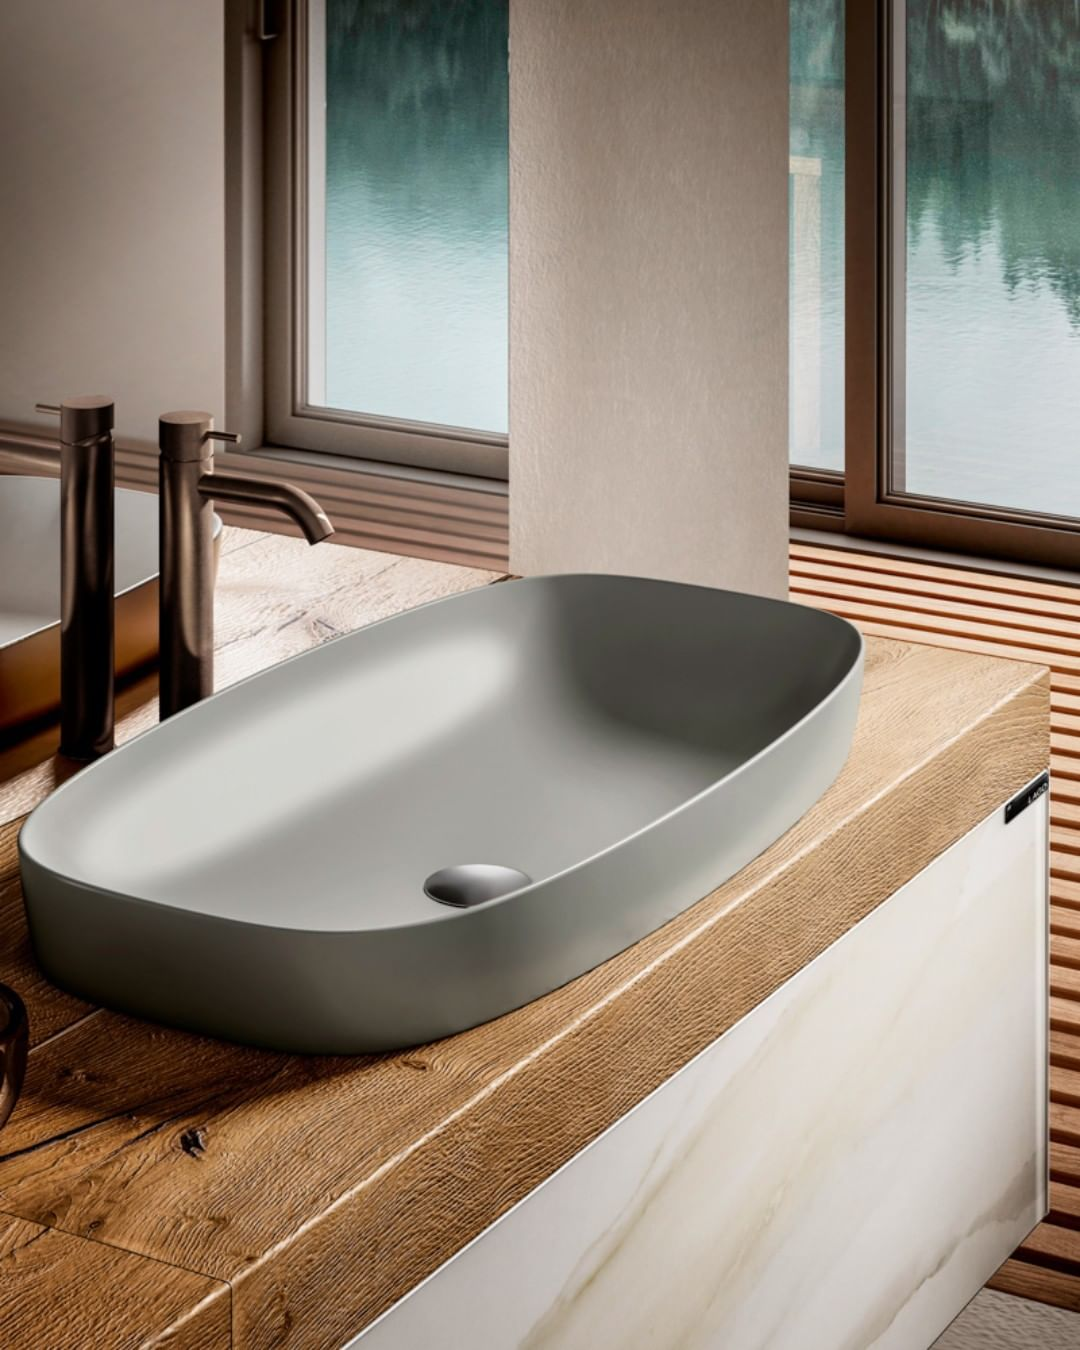 The new Kera Basin is particularly pract...